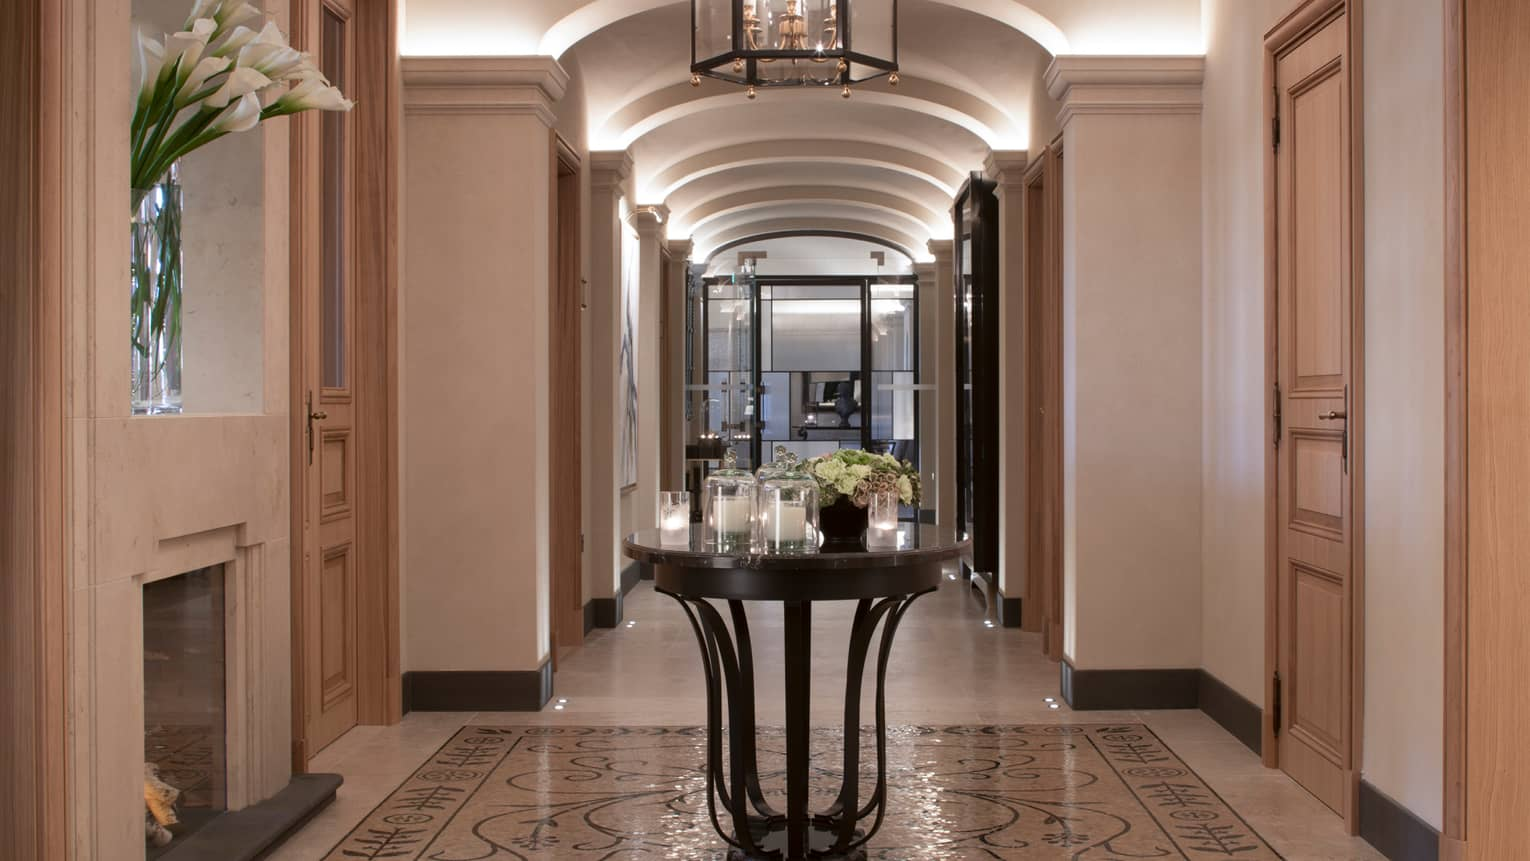 Hotel hallway with marble floors, round table with multiple white candles in glass votives, fresh flowers